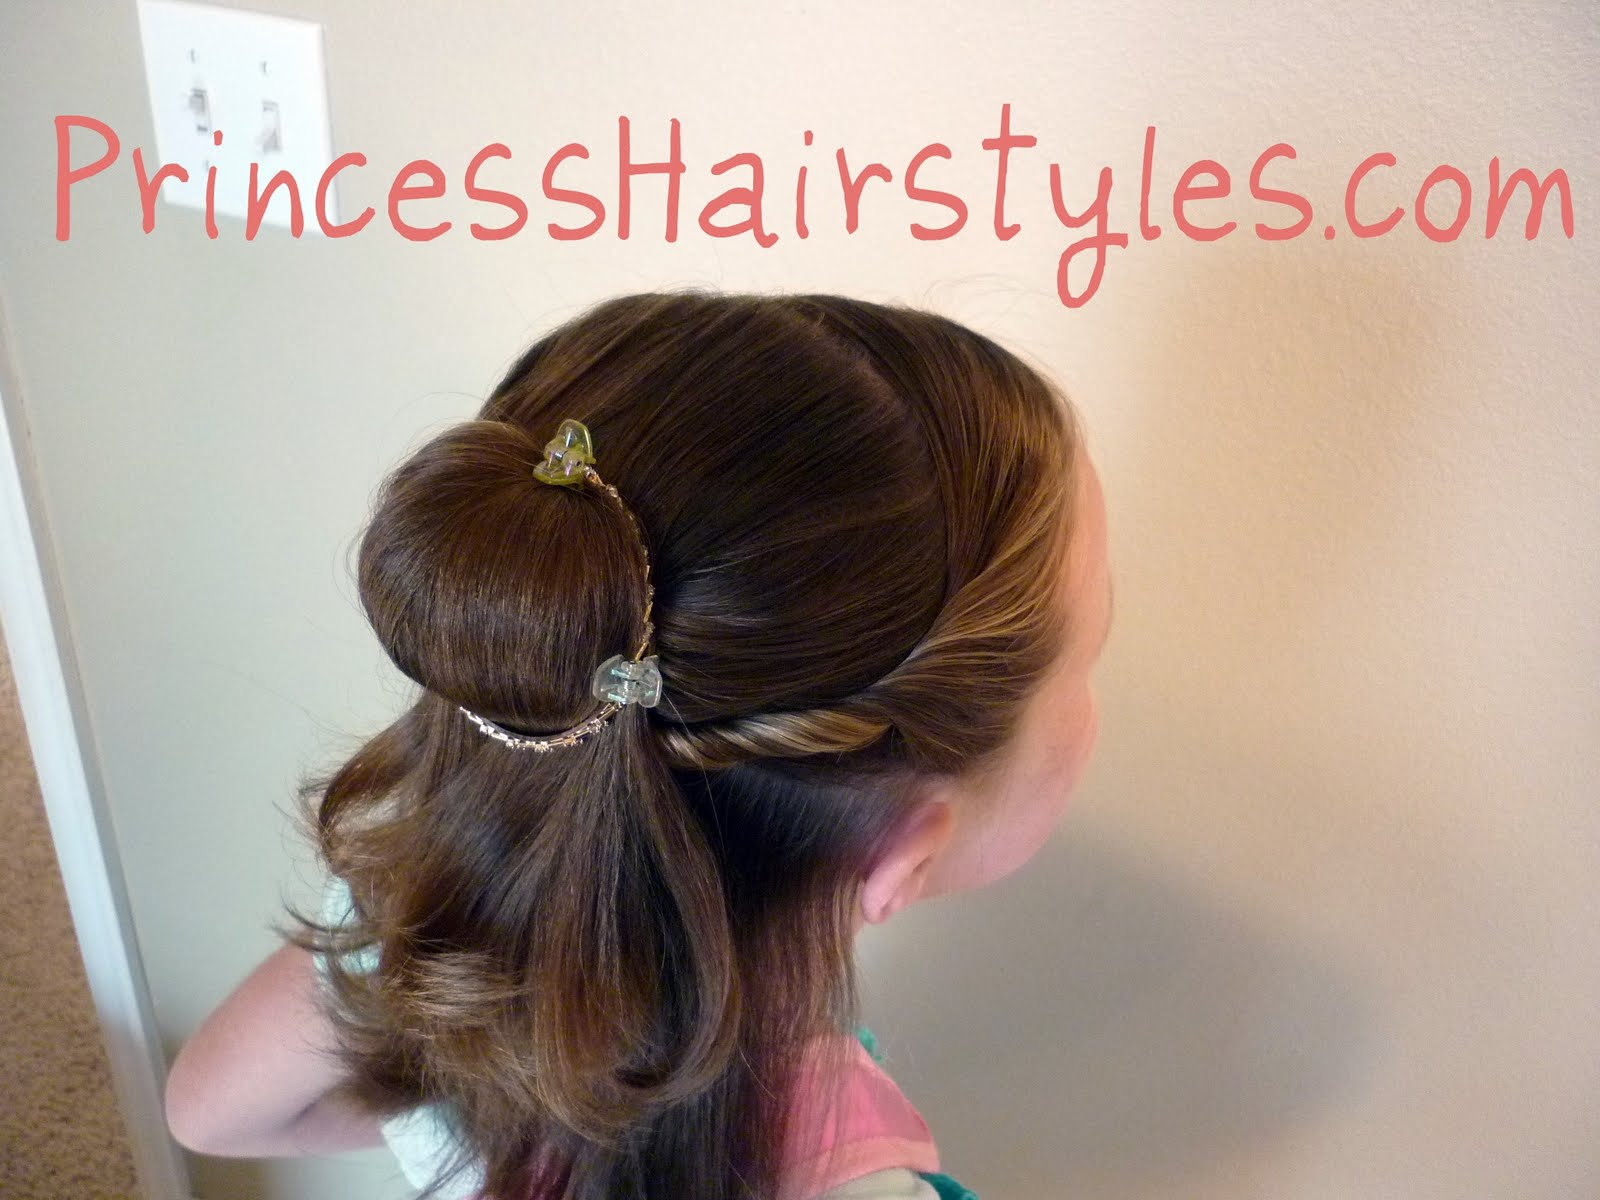 Belle Hairstyle For Short Hair Hairstyles For Girls Princess